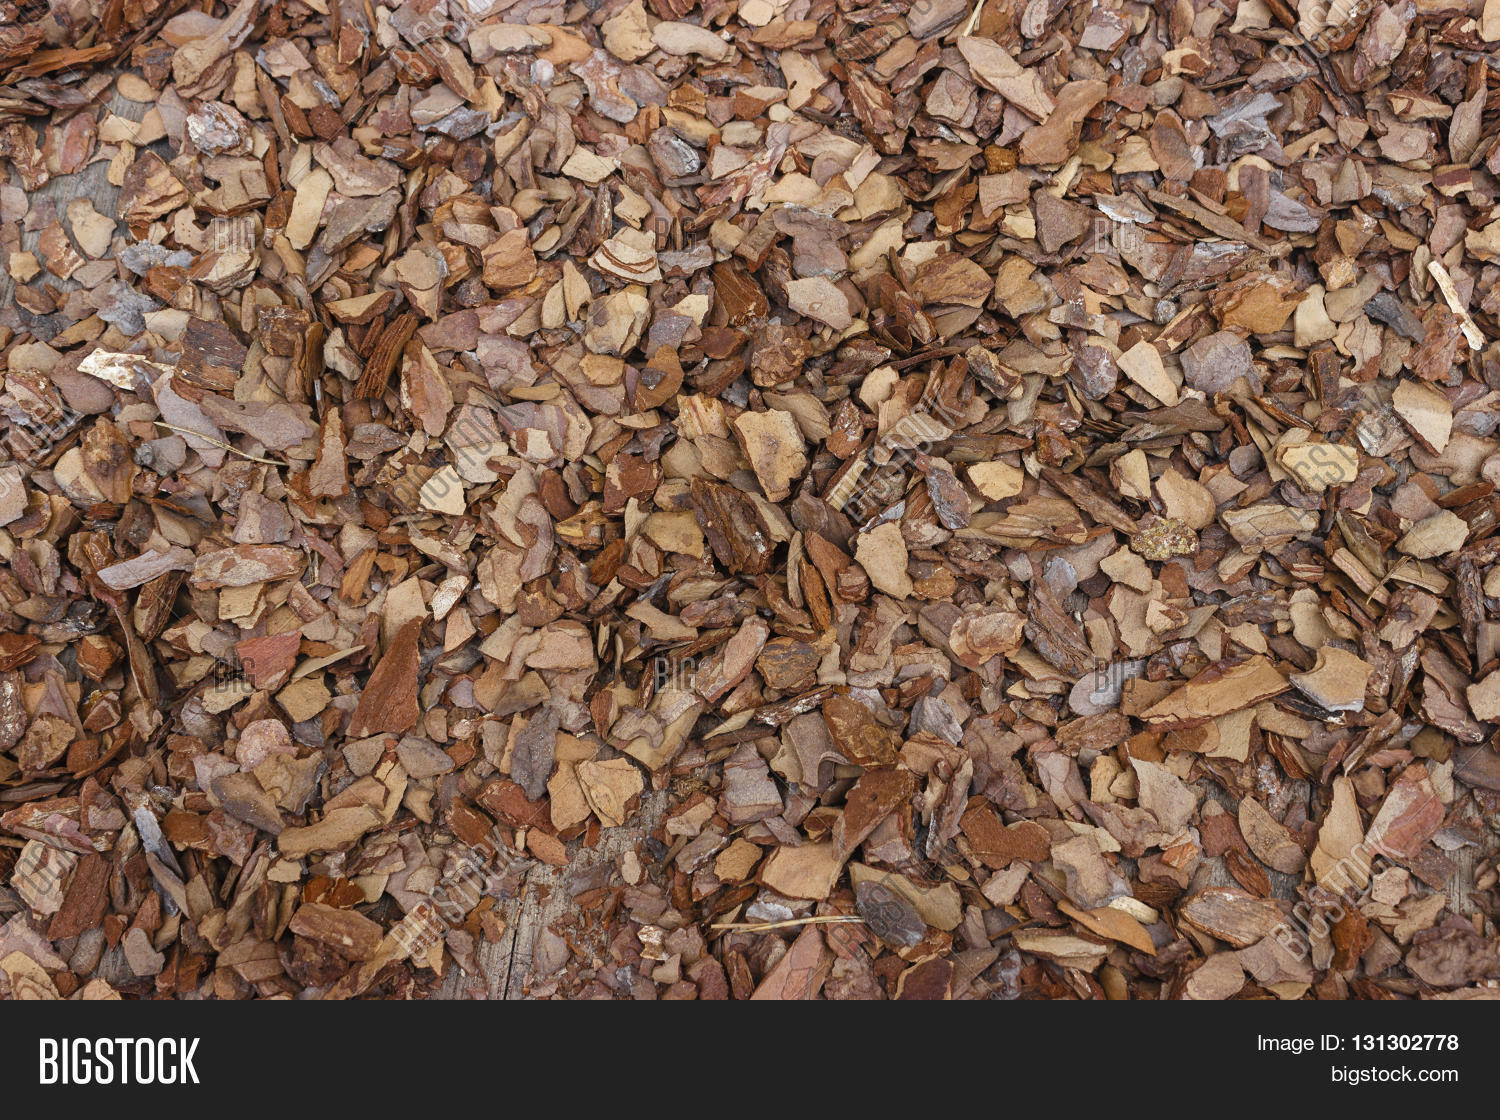 pine bark mulch background crushed image amp photo free trial bigstock 28551